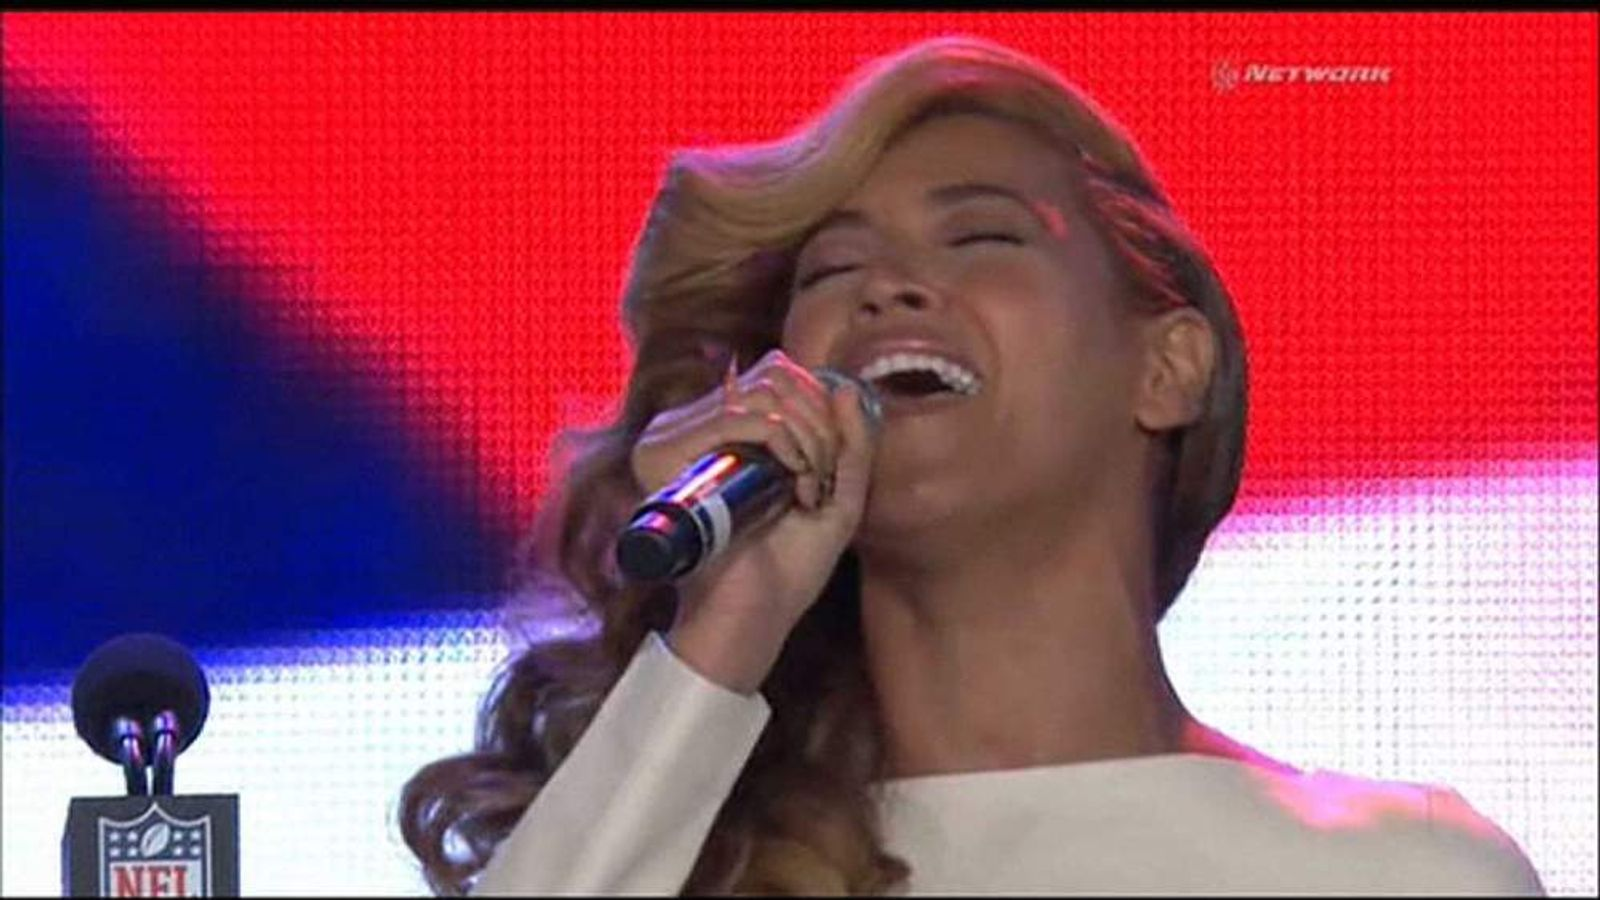 Beyonce sings The Star-Spangled Banner at the news conference